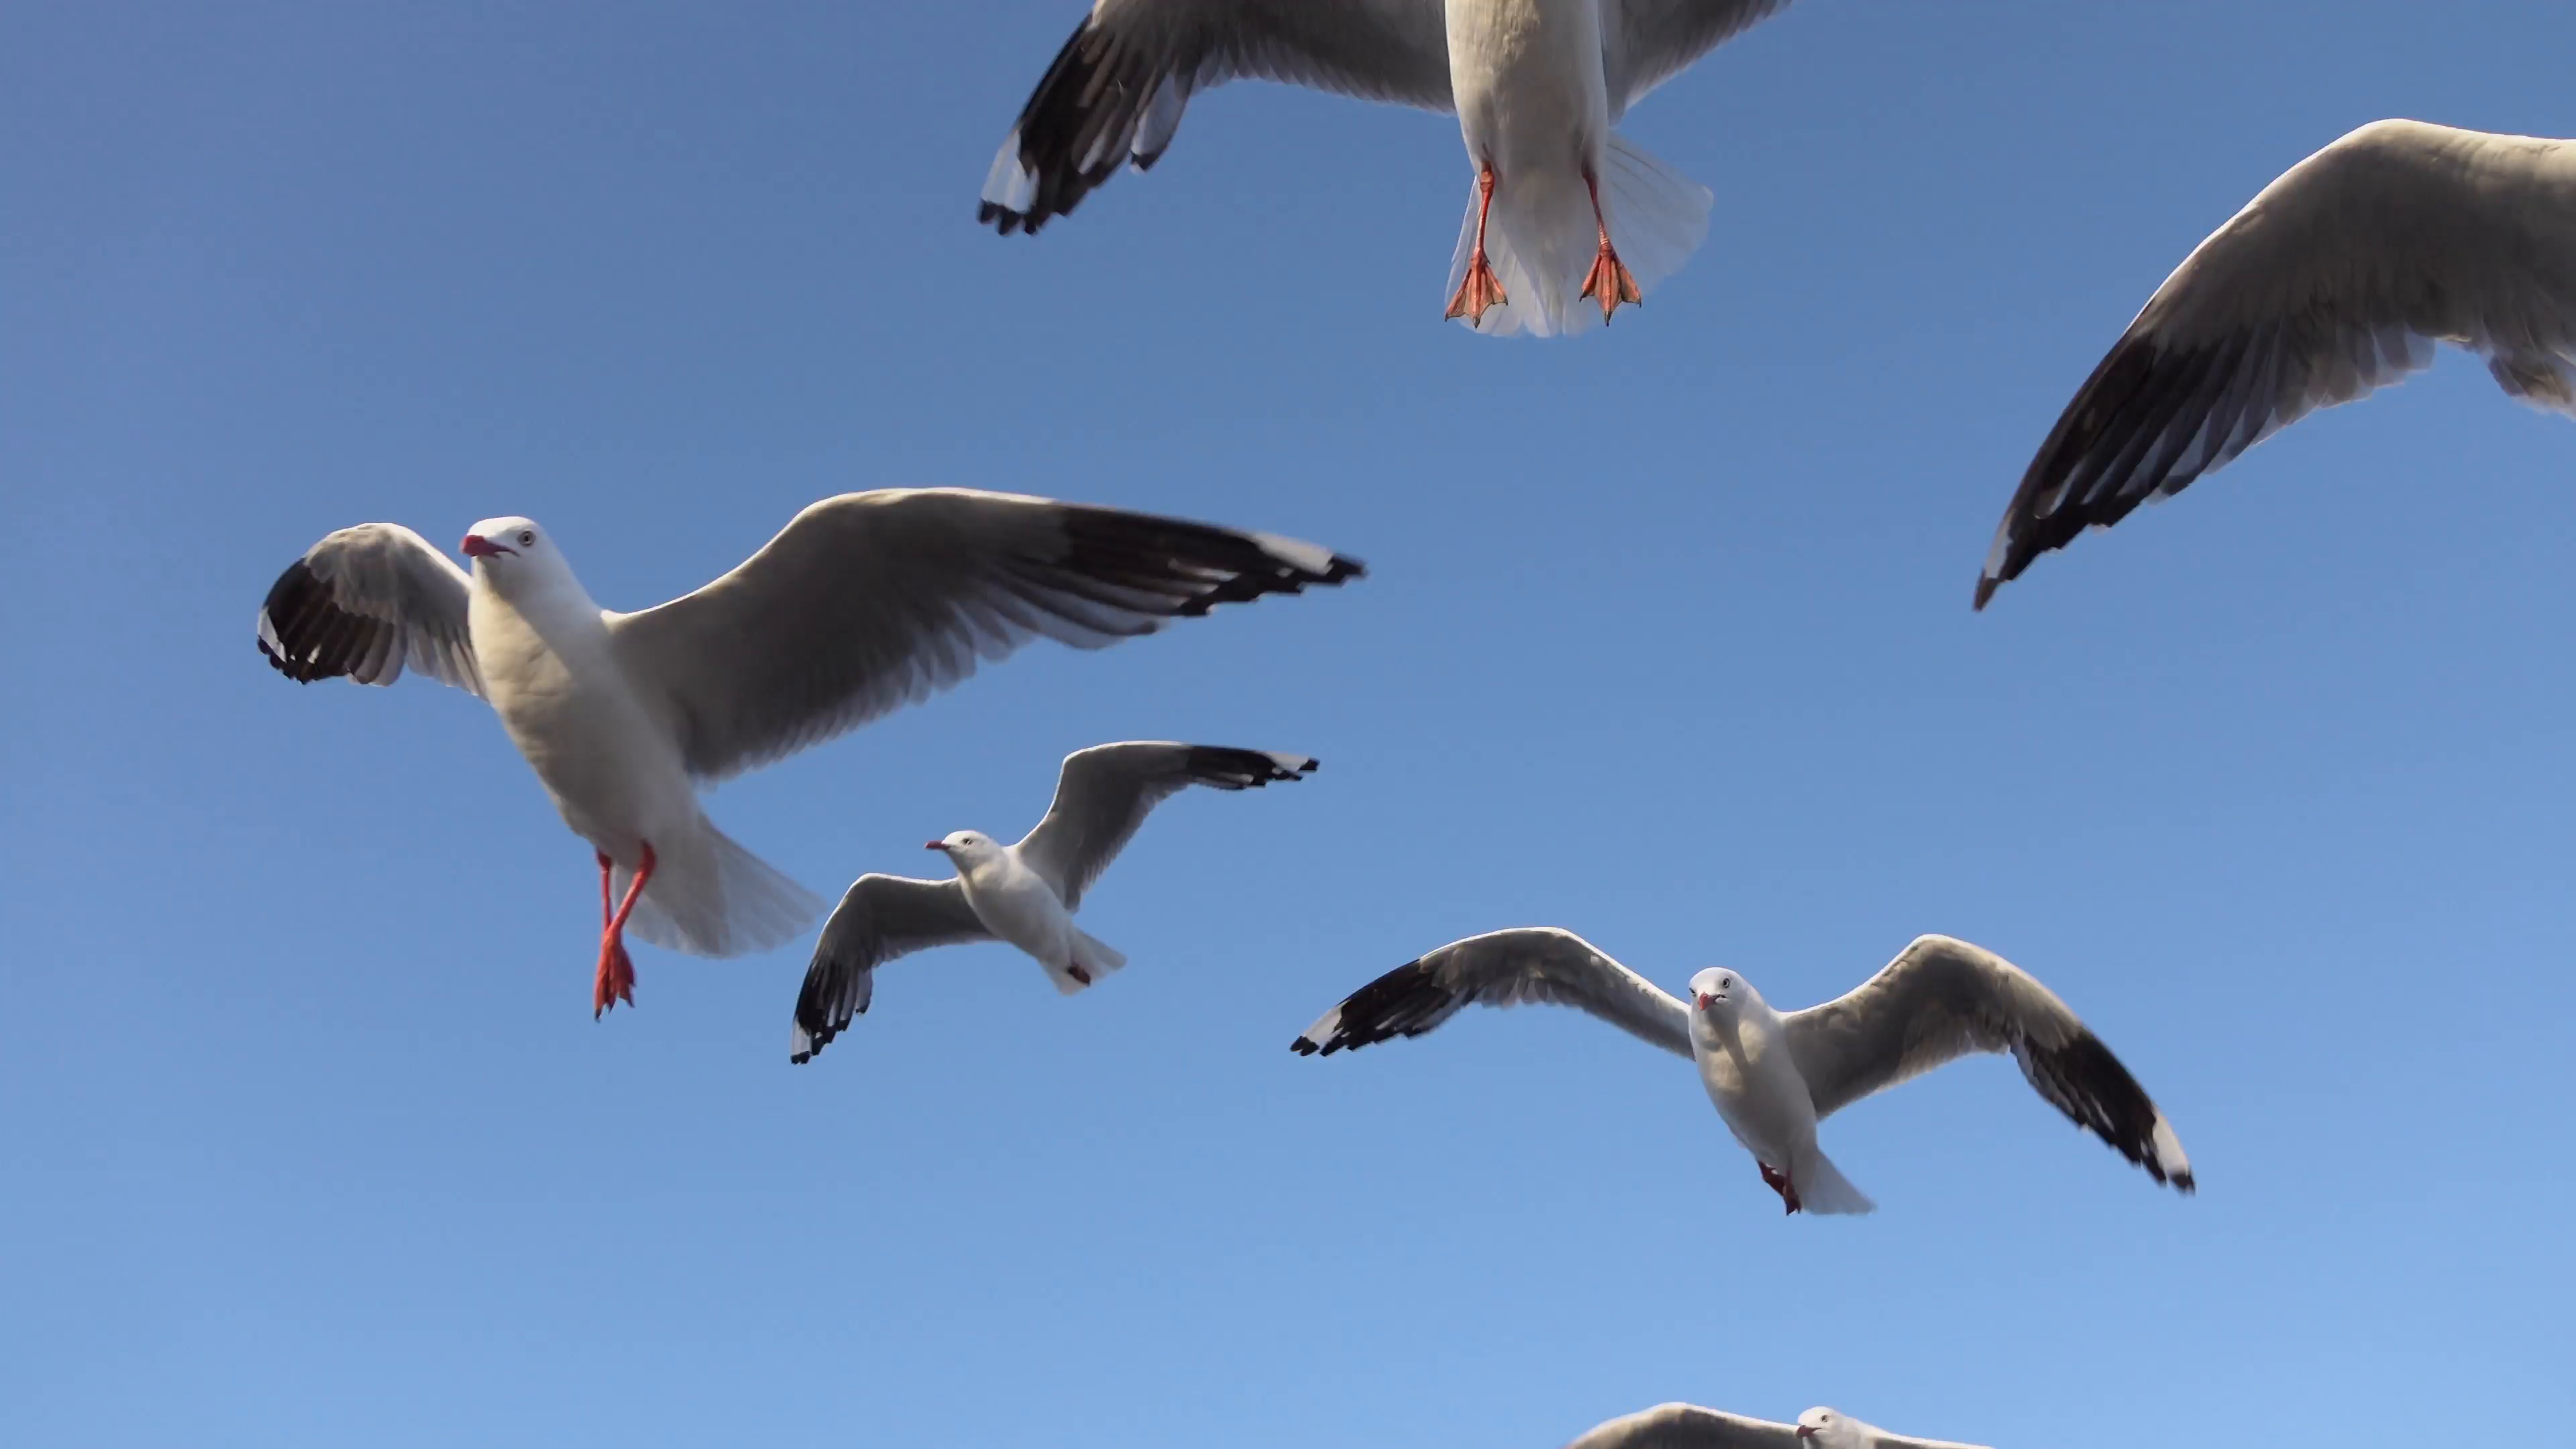 Bunch of seagulls photo